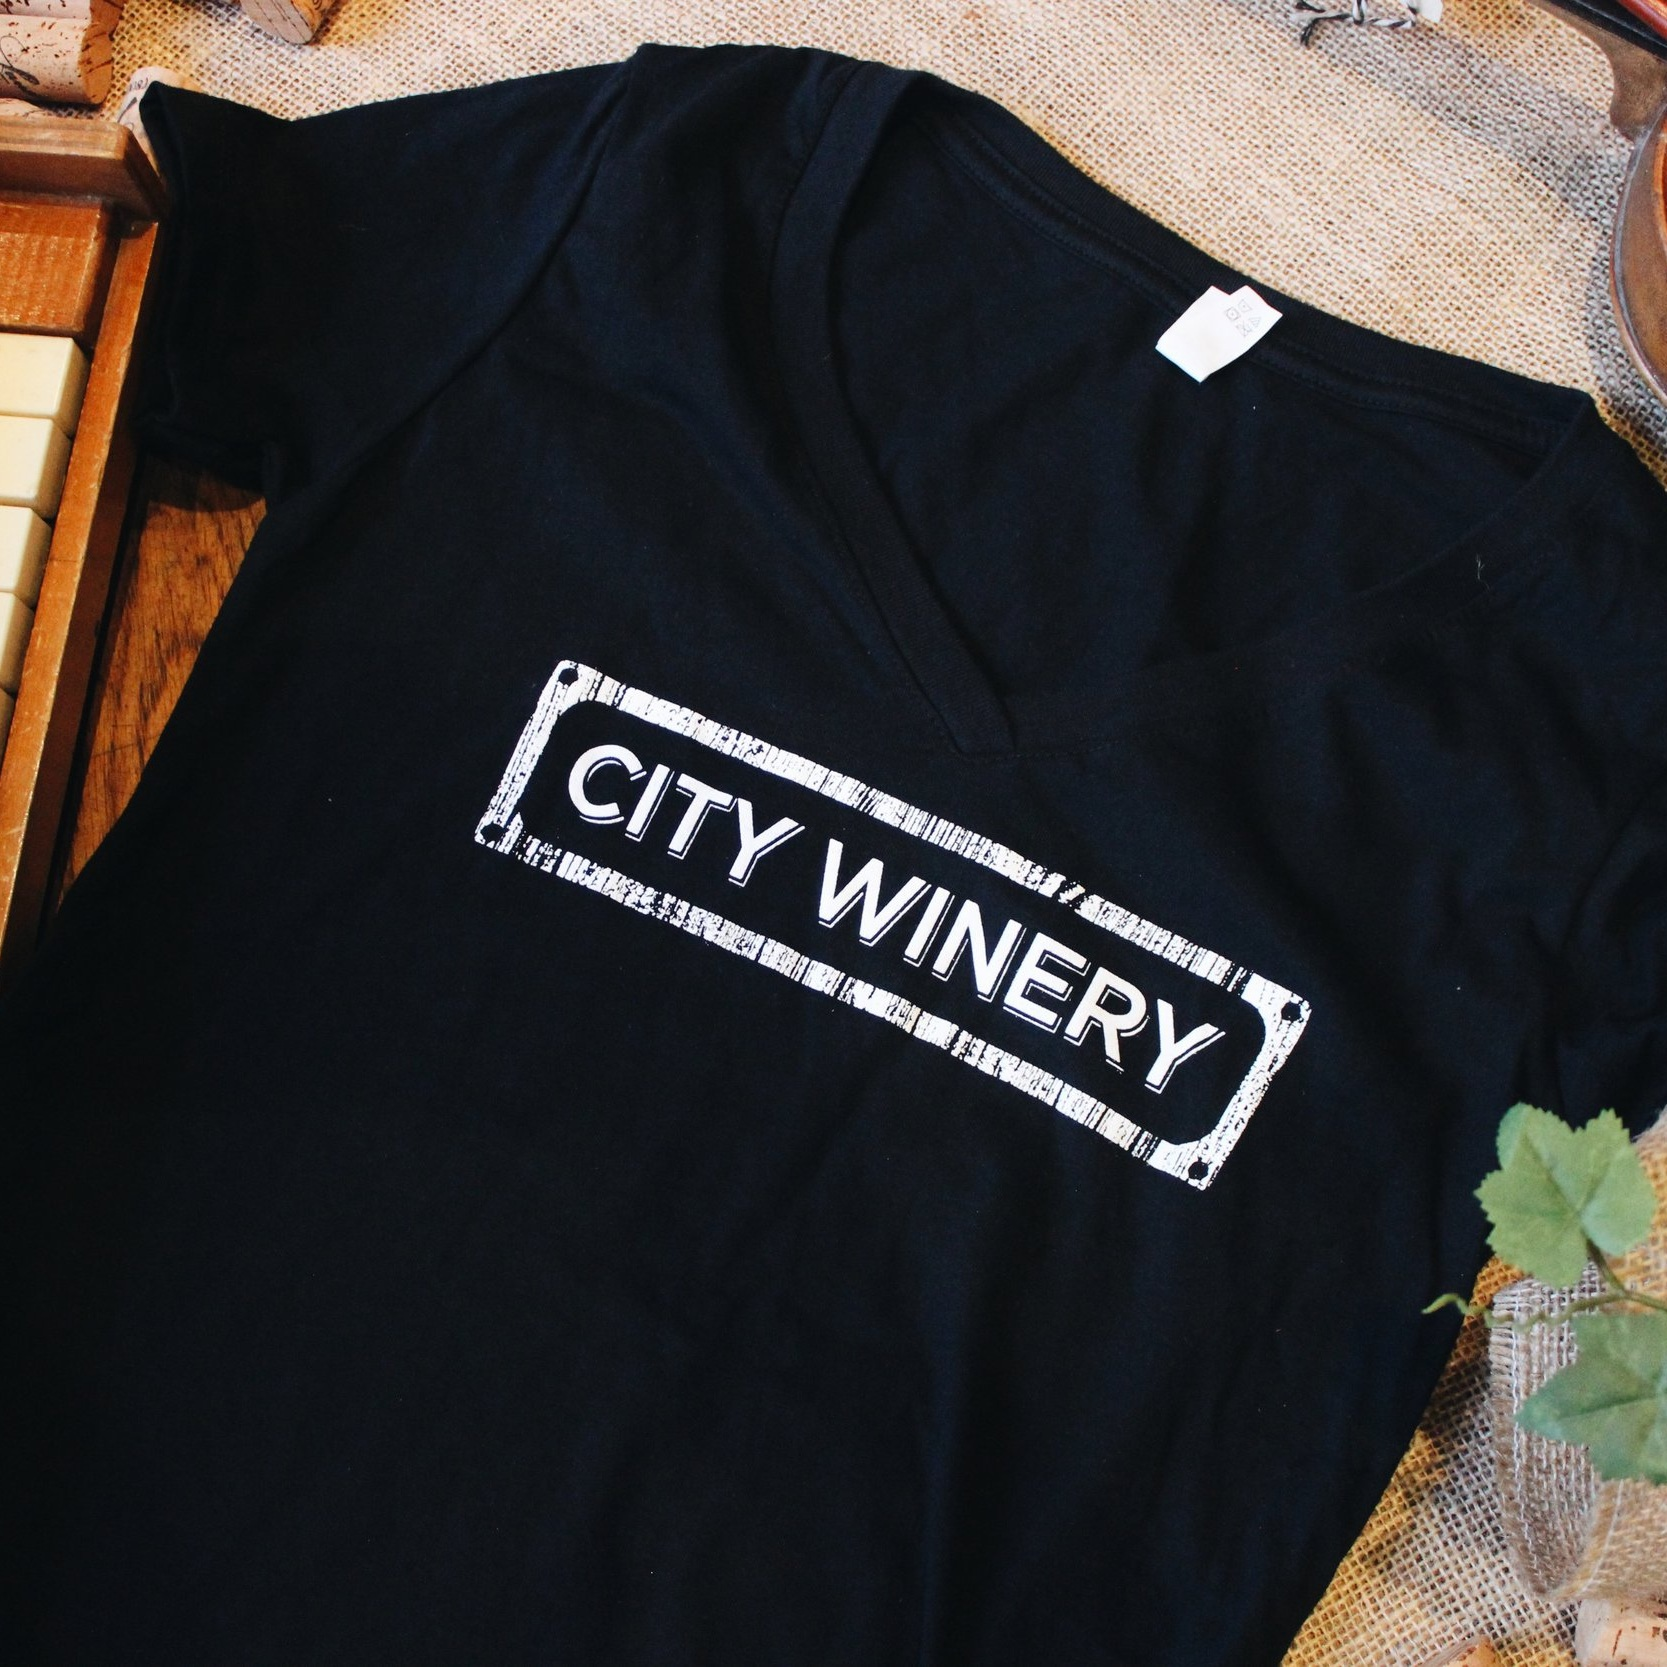 CITY WINERY LOGO BLACK T-SHIRT - Rep the City Winery brand with this comfortable, relaxed cotton t-shirt with a rounded neckline and short sleeves. Fits true to adult sizing.